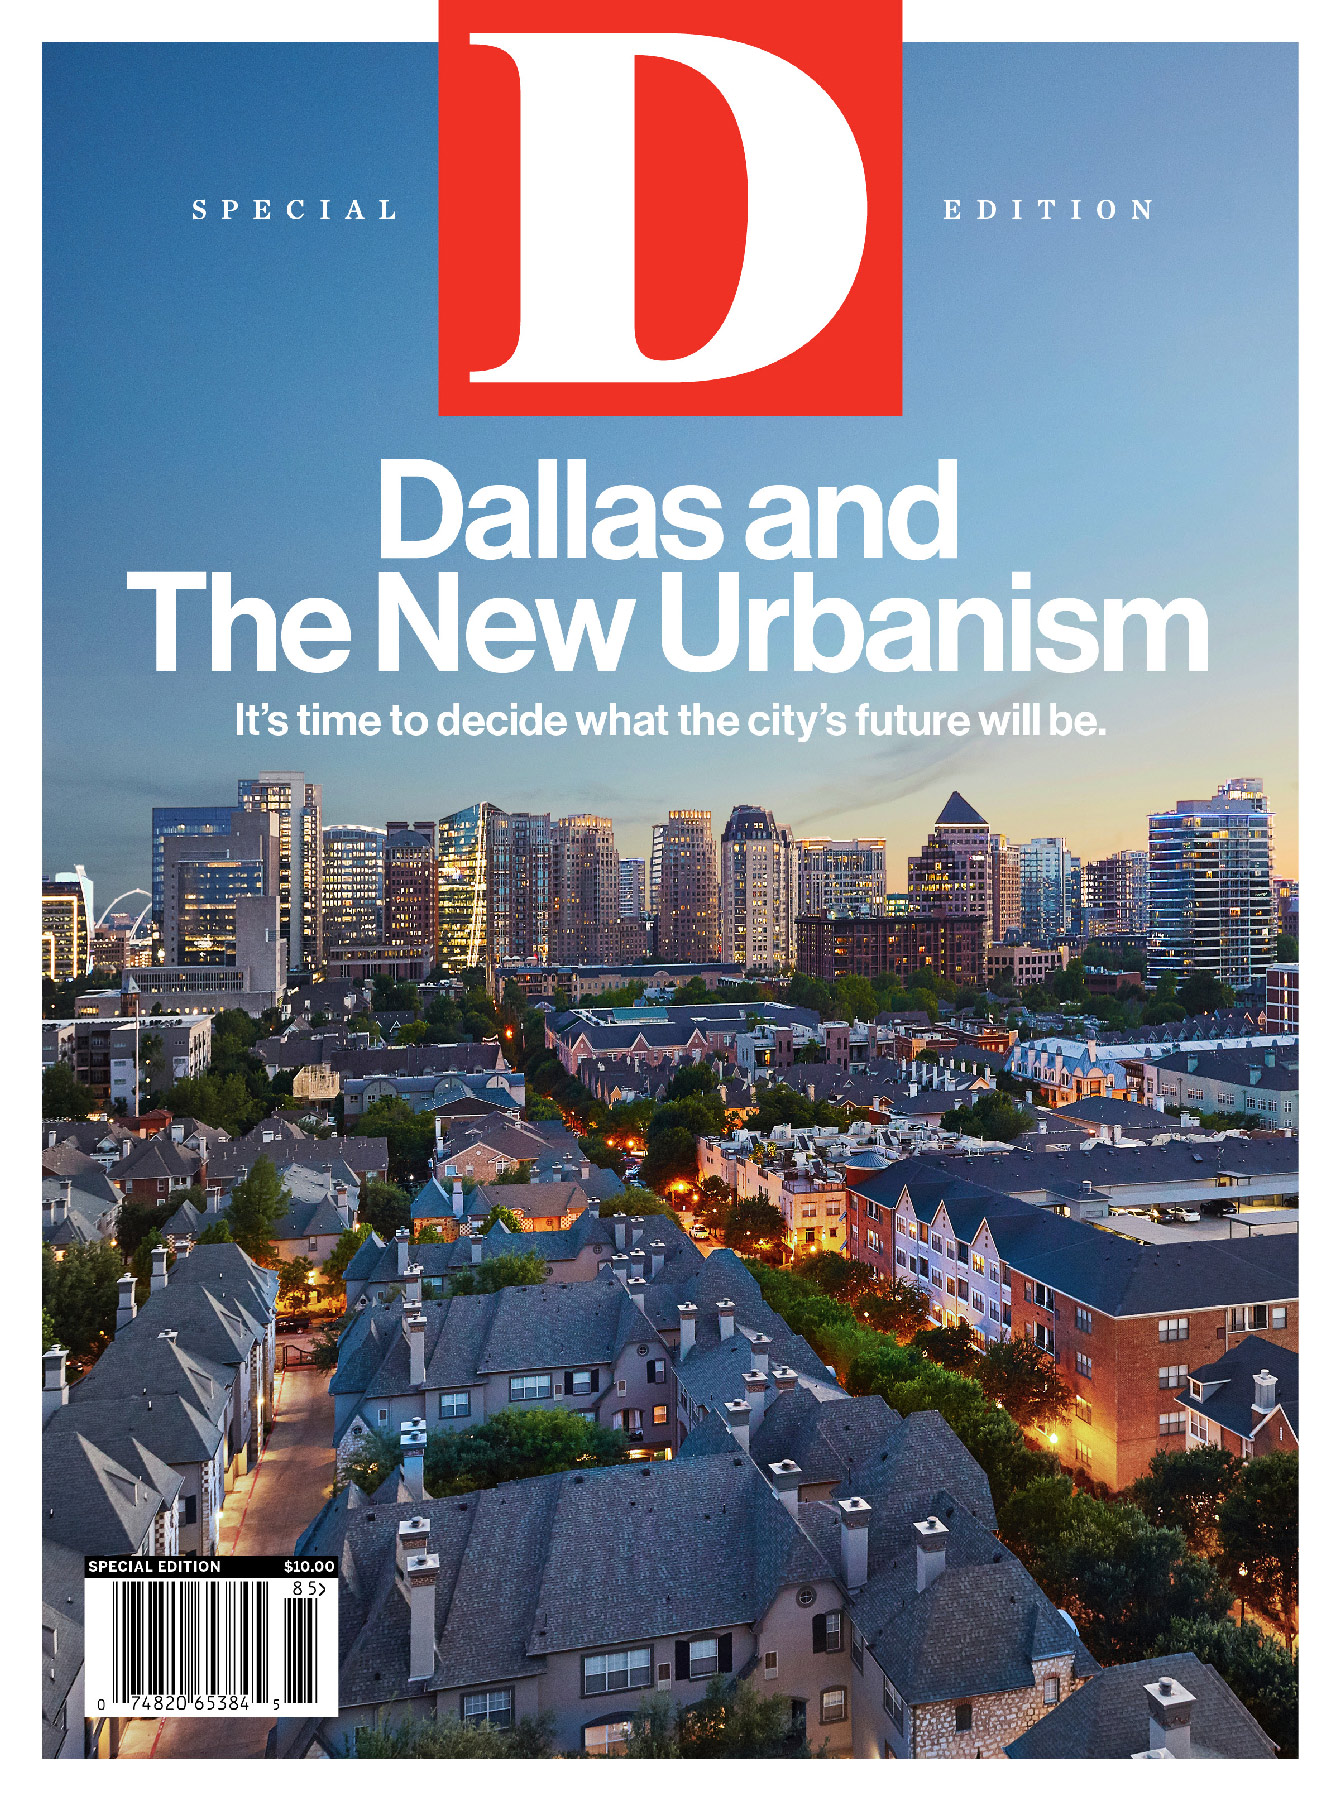 Dallas and the New Urbanism 2018 cover